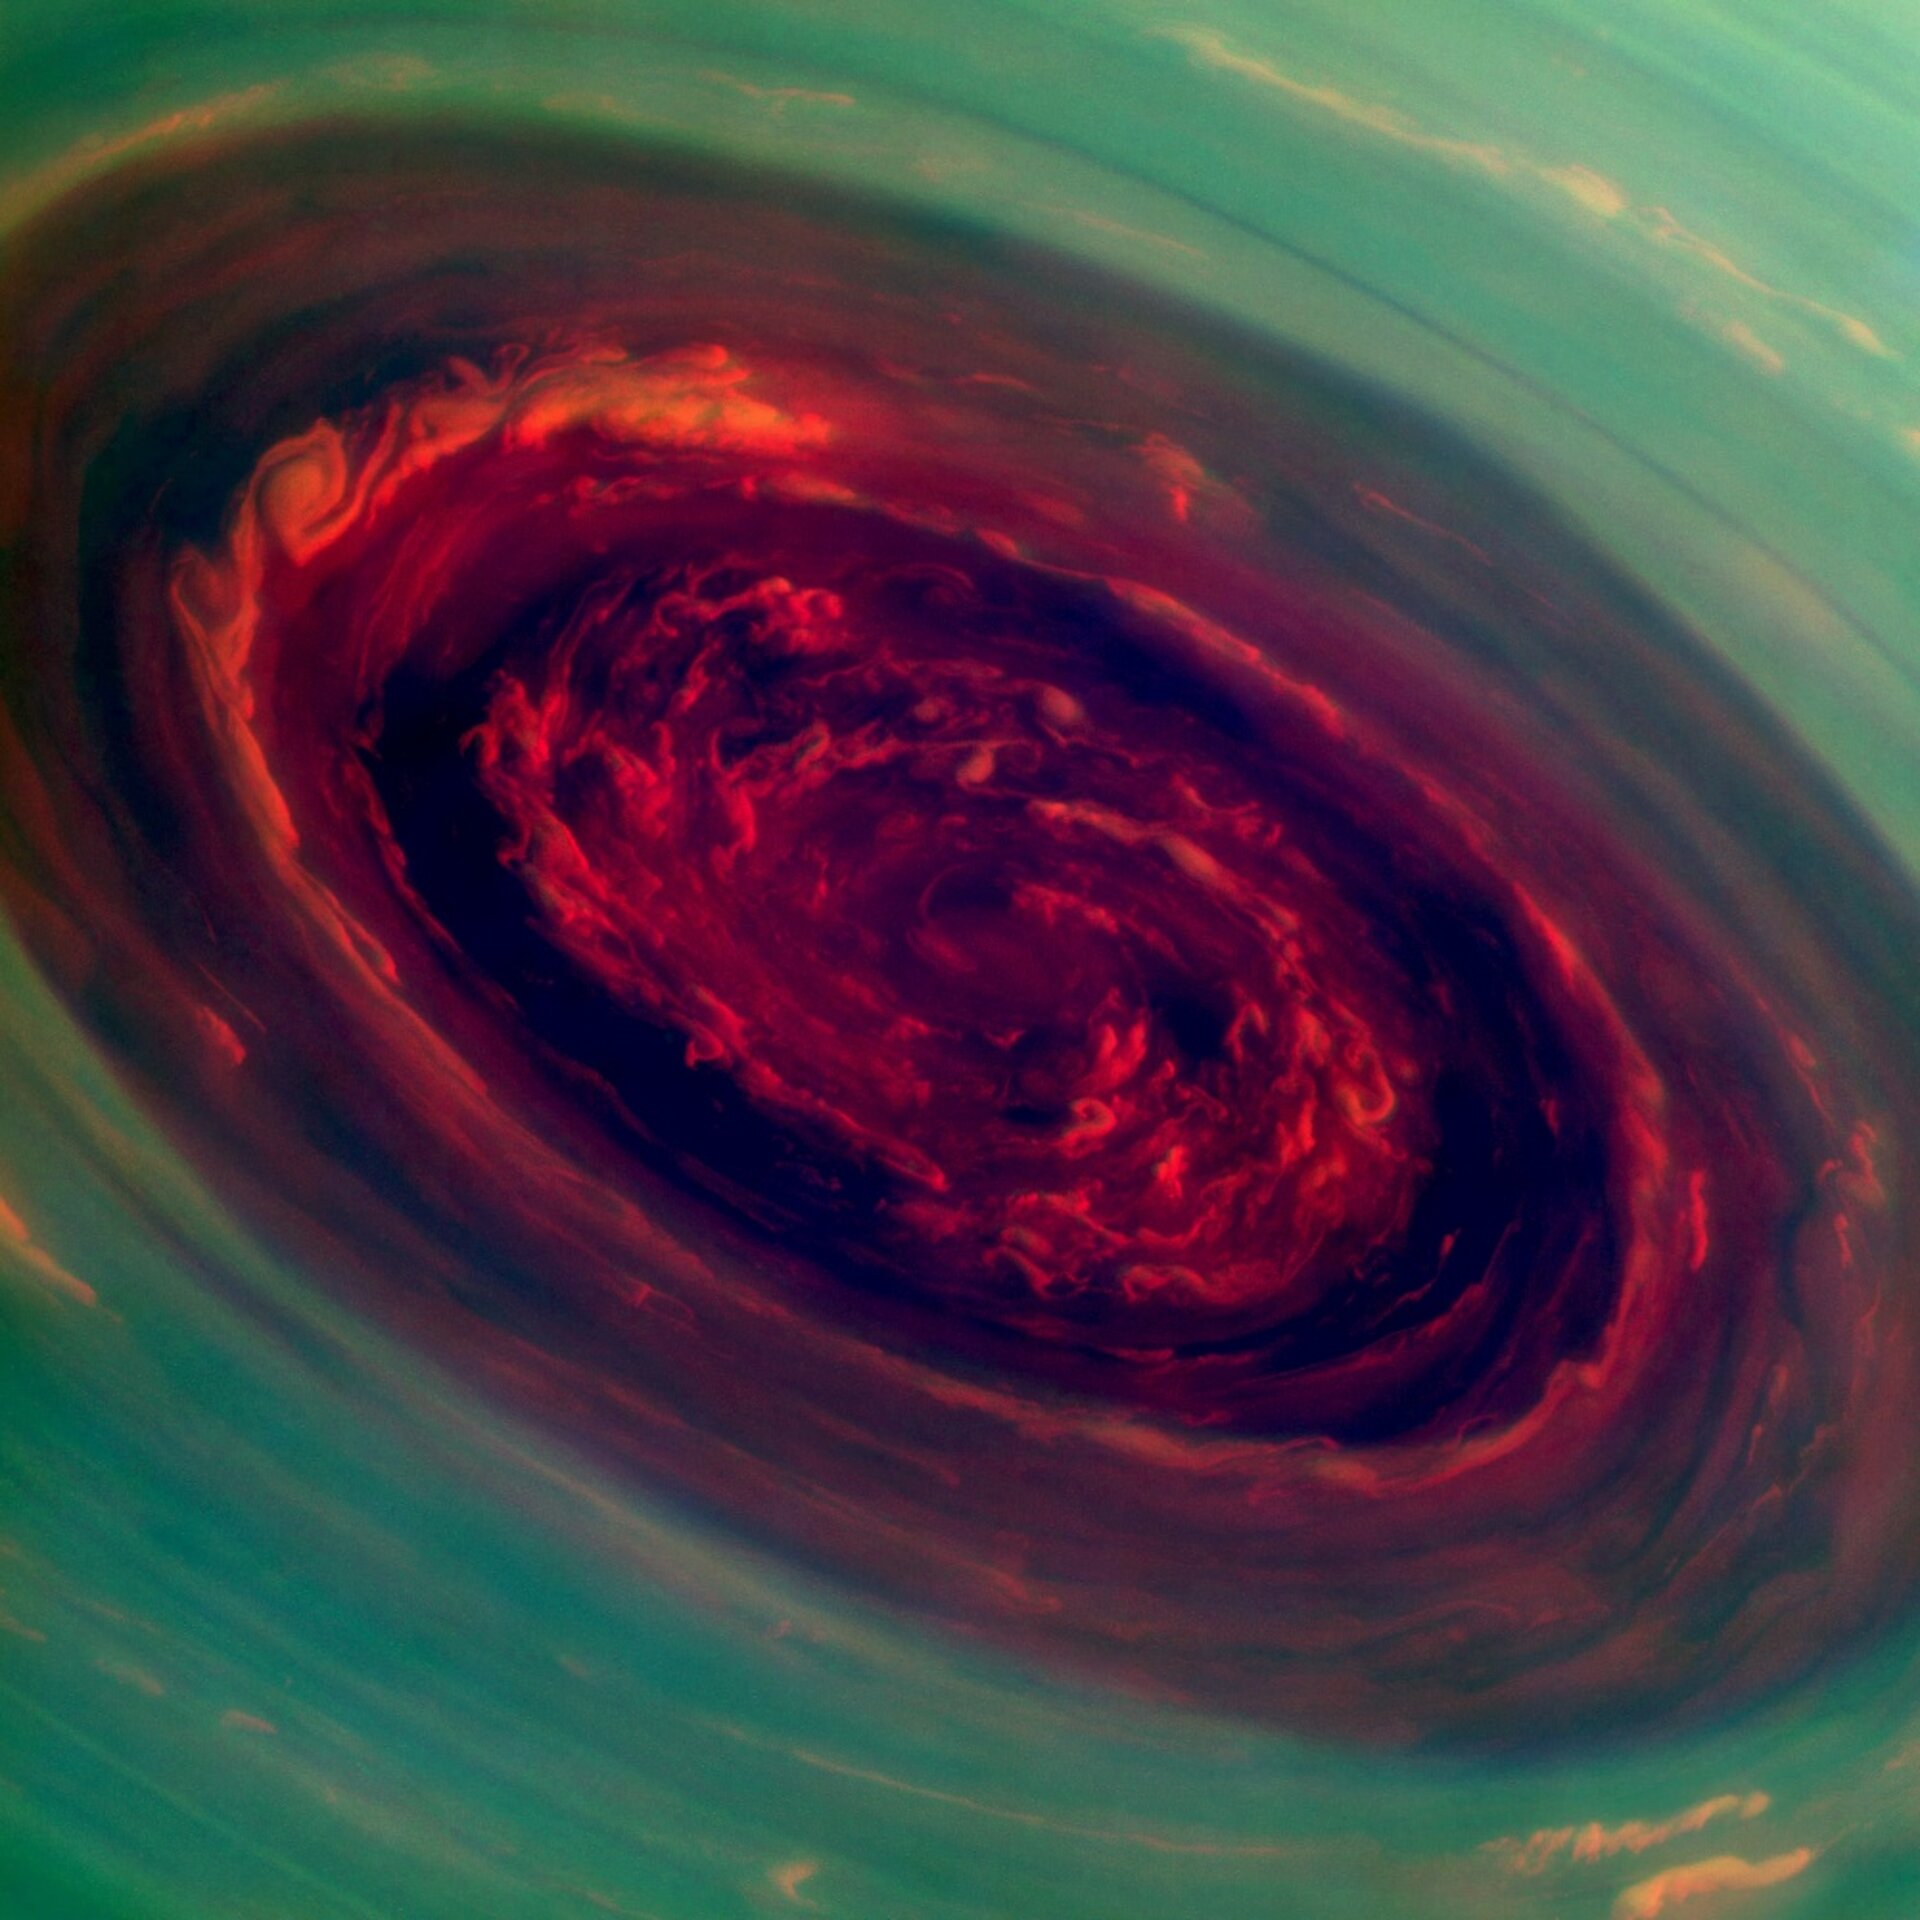 Saturn's north-pole hurricane close up